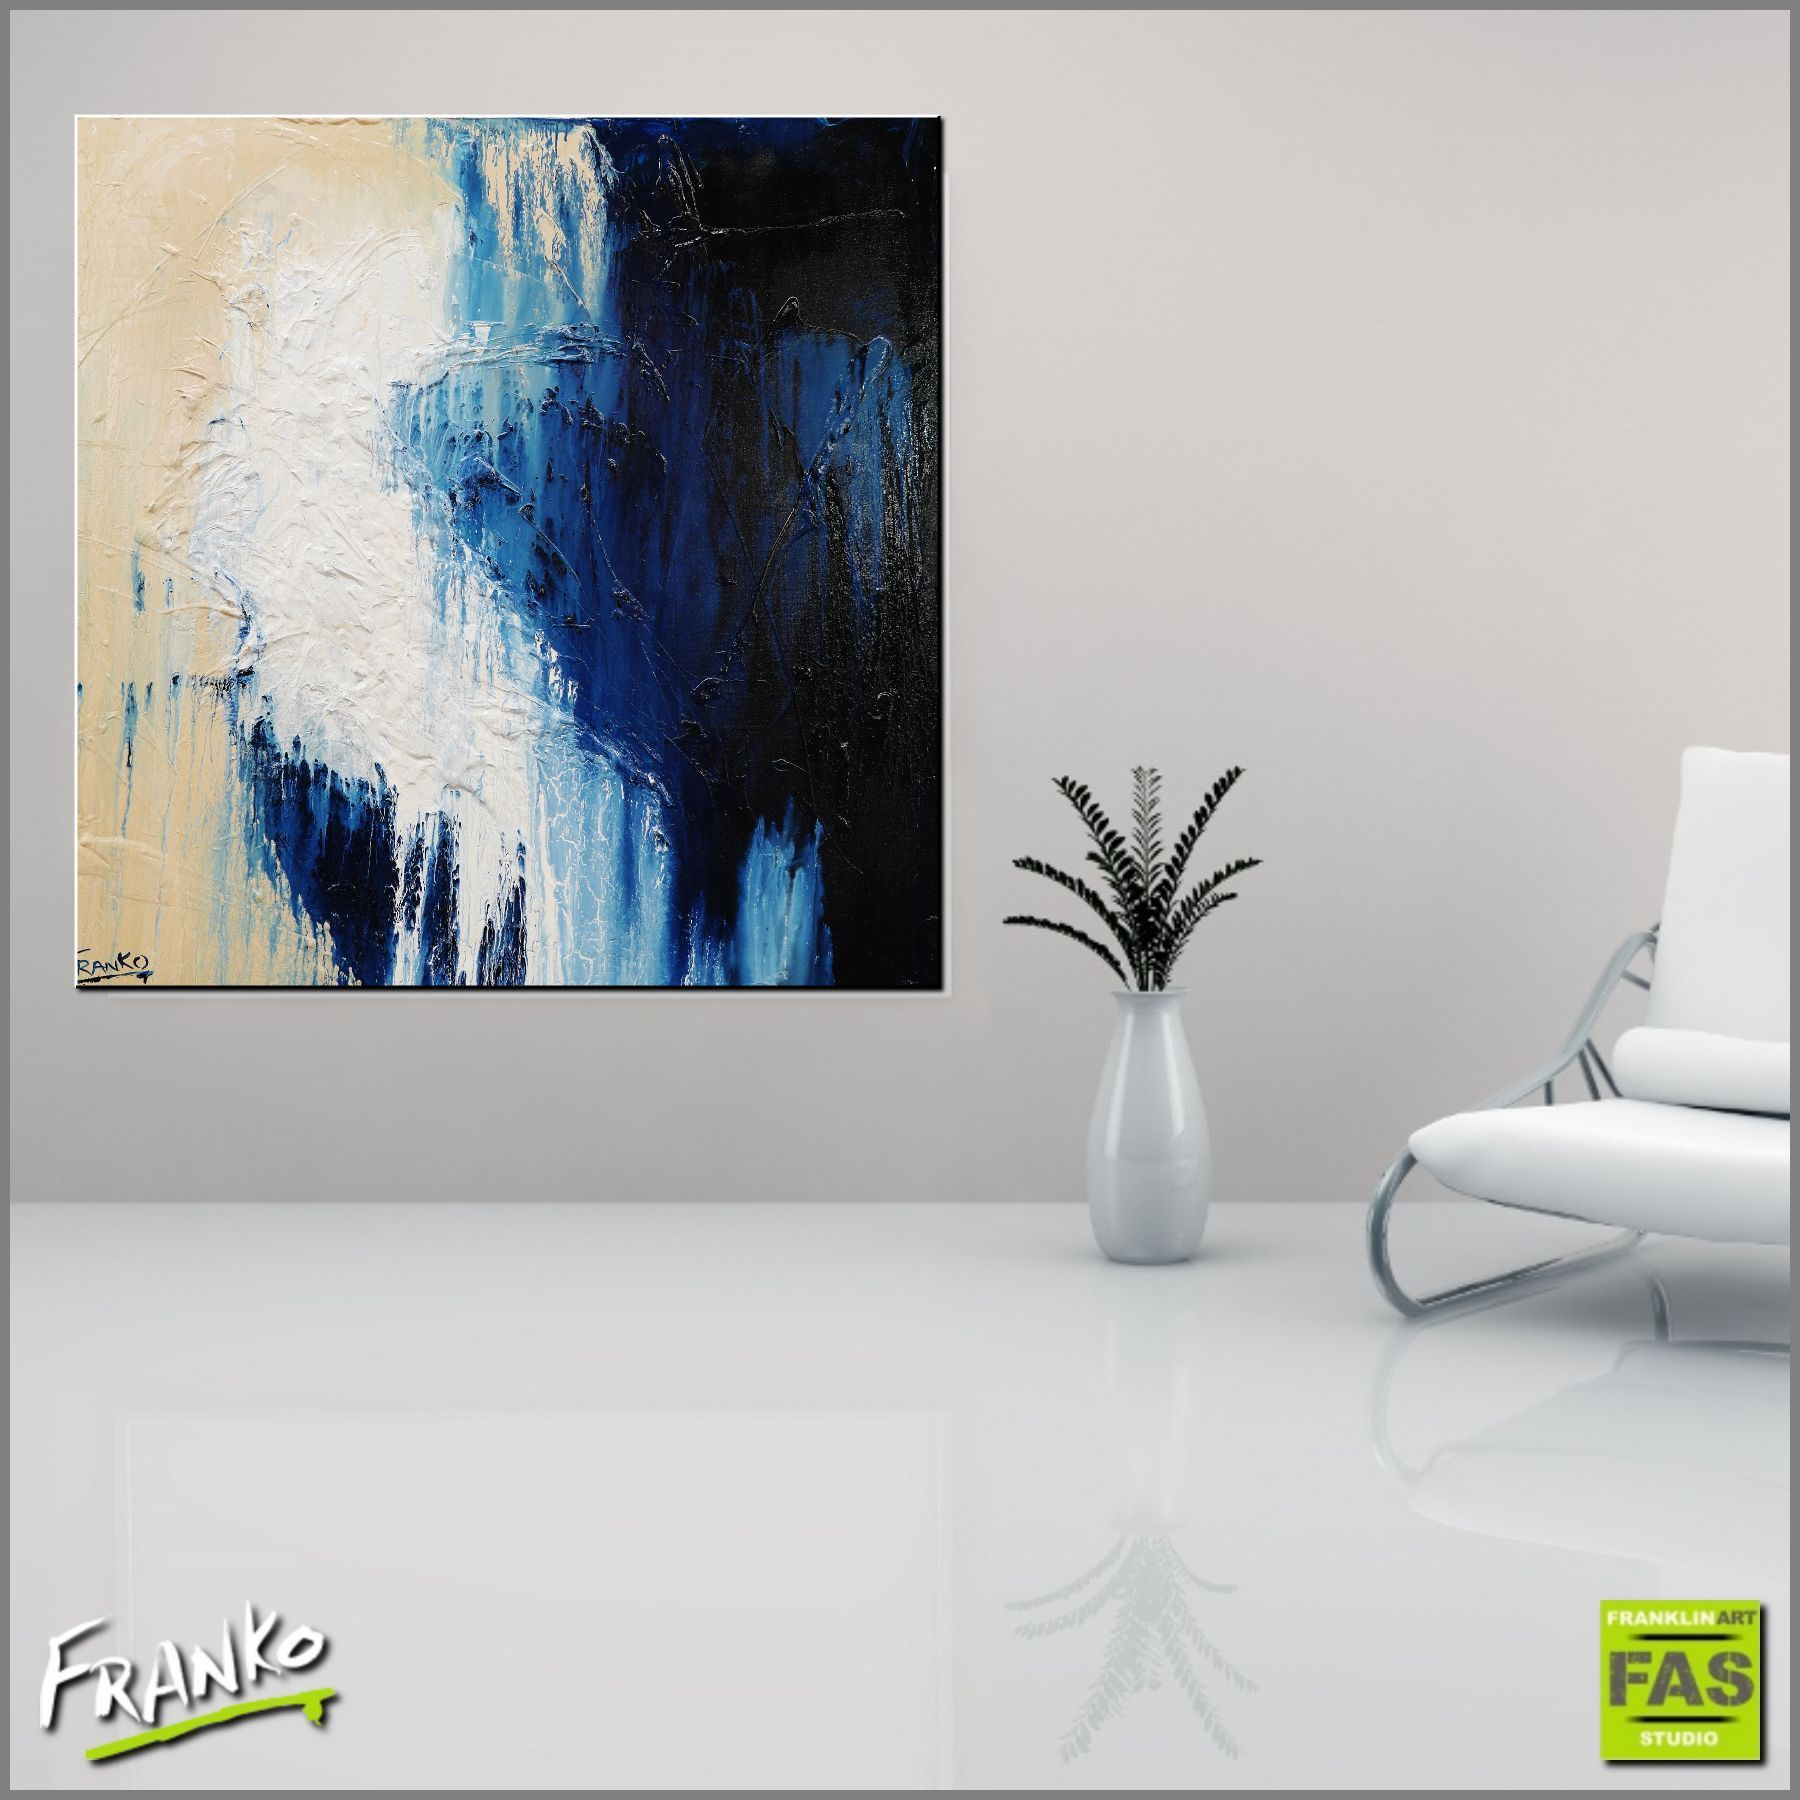 100-blues-100cm-x-100cm-blue-abstract-painting-franklin-art-studio-franko-artist